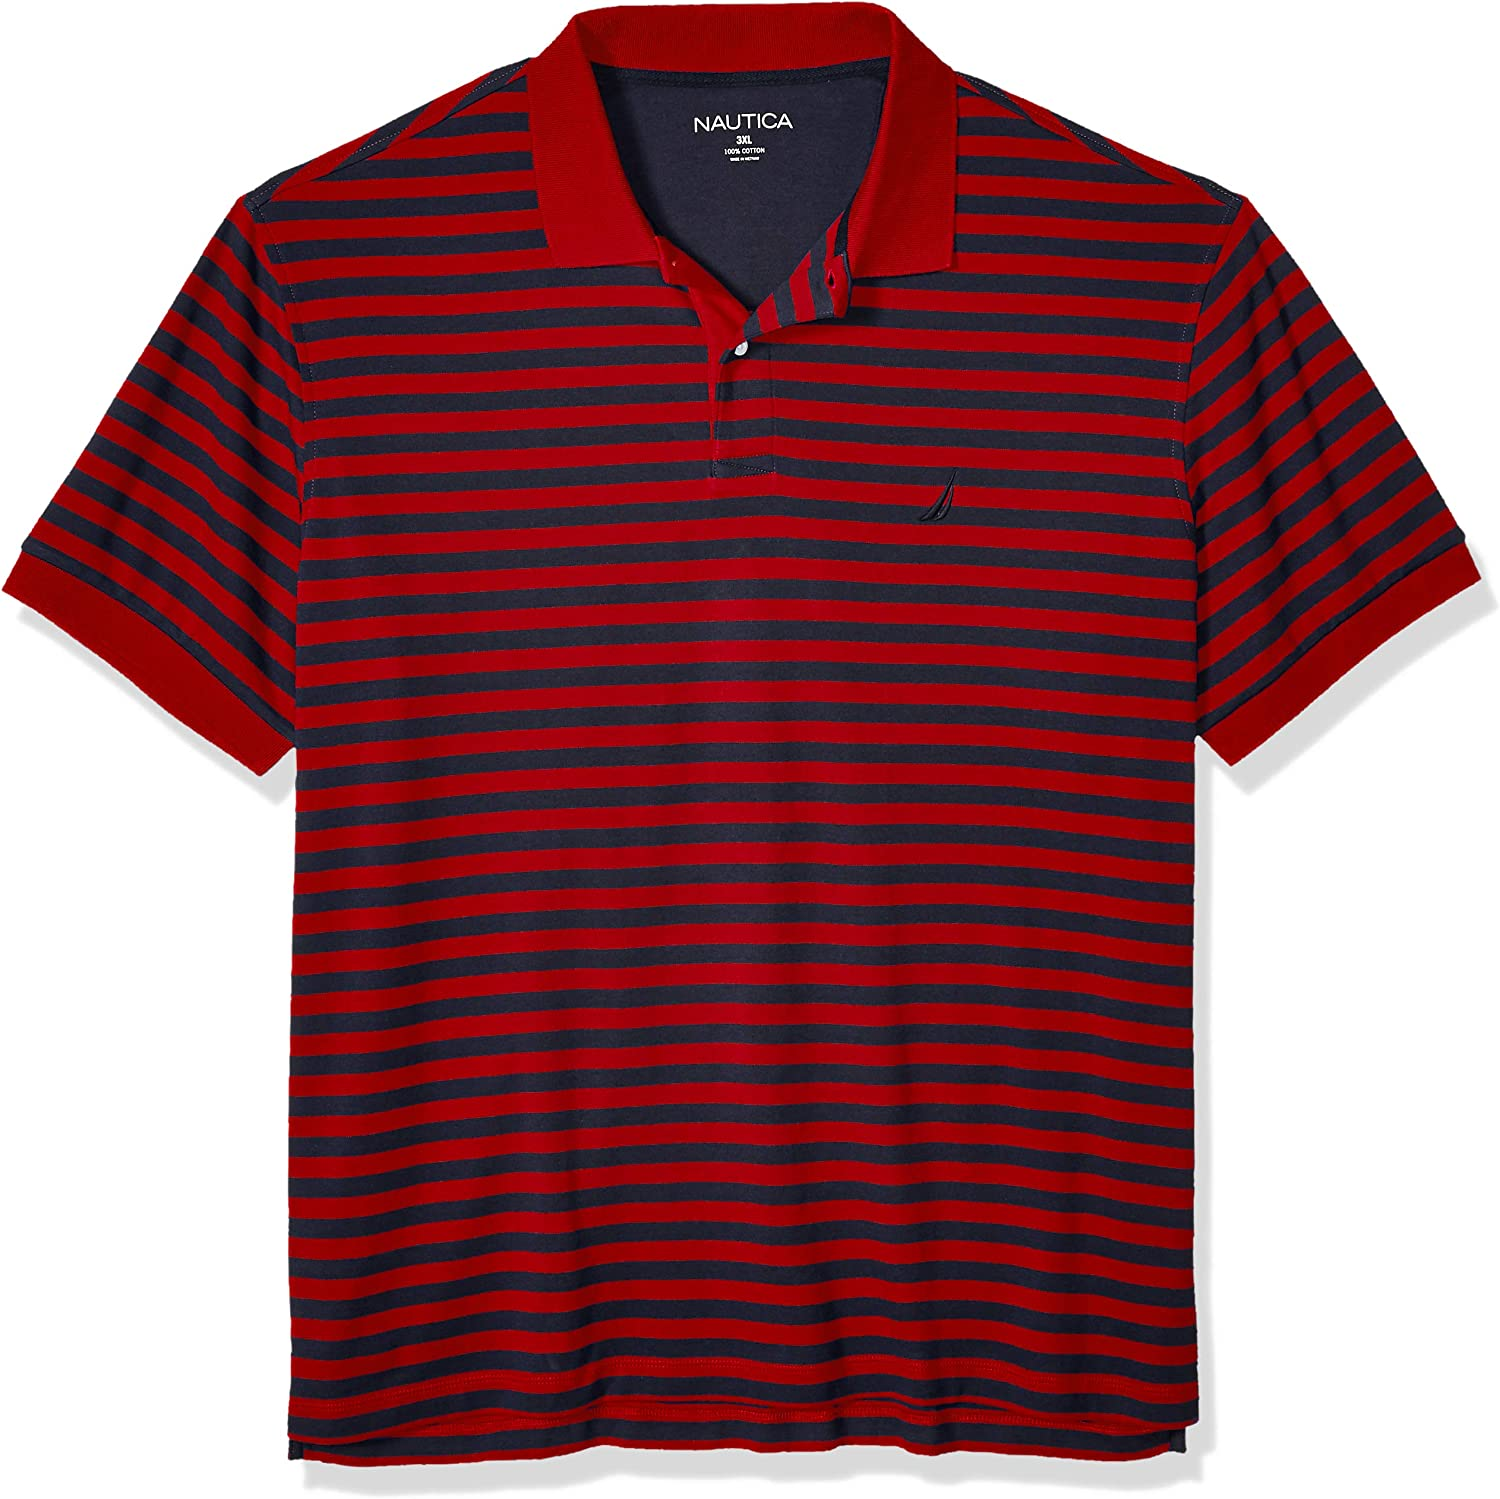 Nautica Mens Big and Tall Classic Fit Short Sleeve 100/% Cotton Stripe Soft Polo Shirt